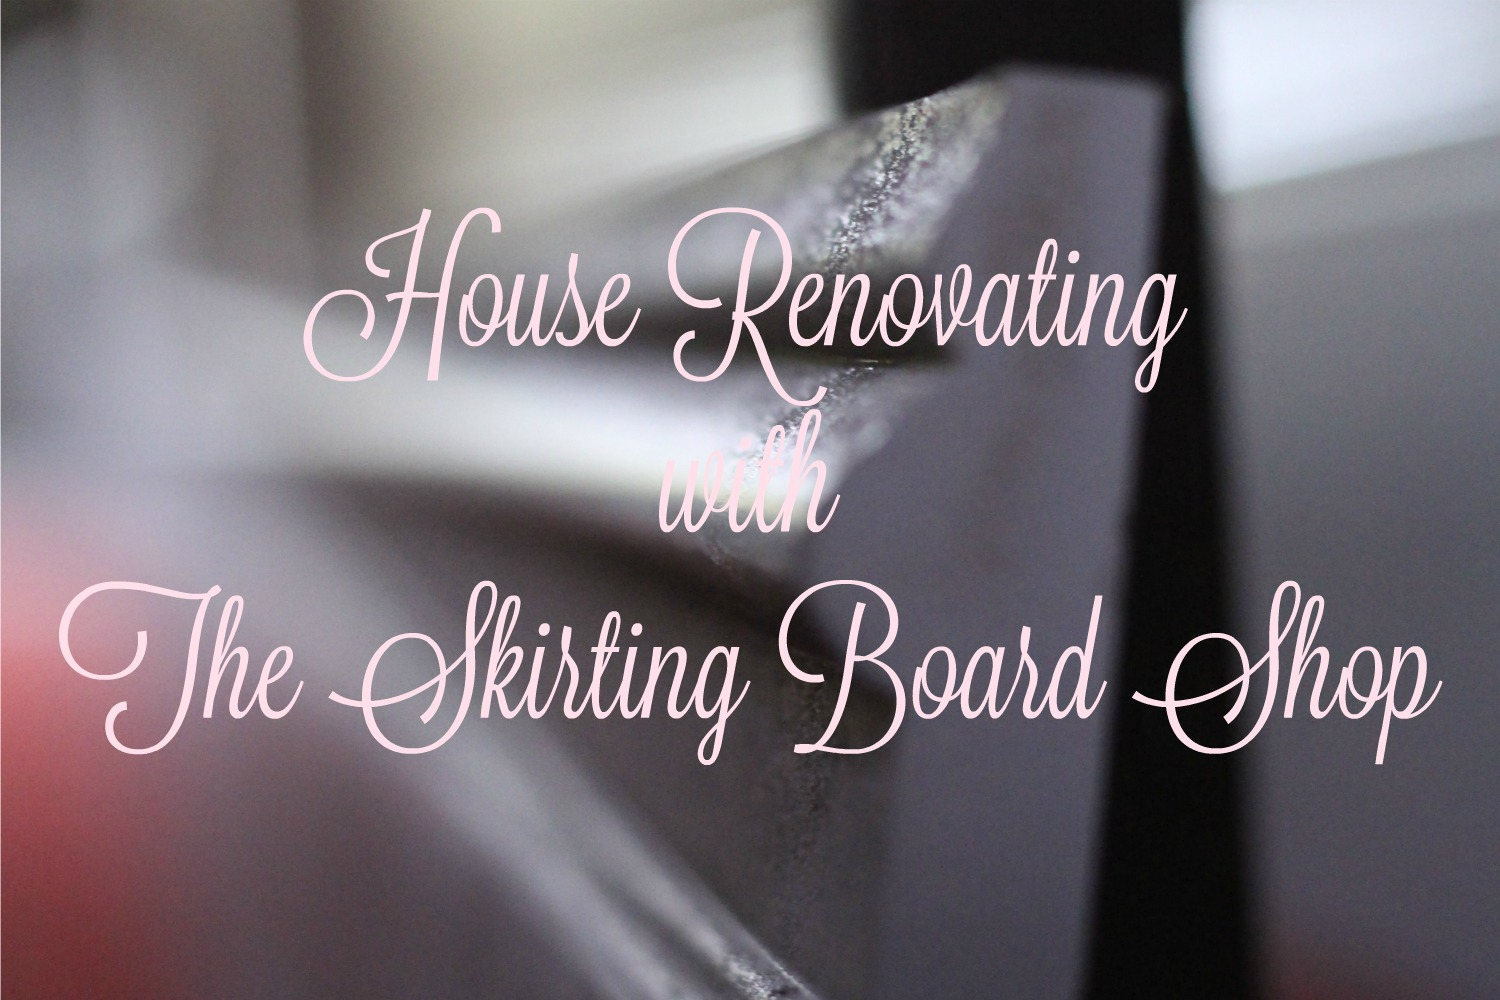 House renovating with The Skirting Board Shop